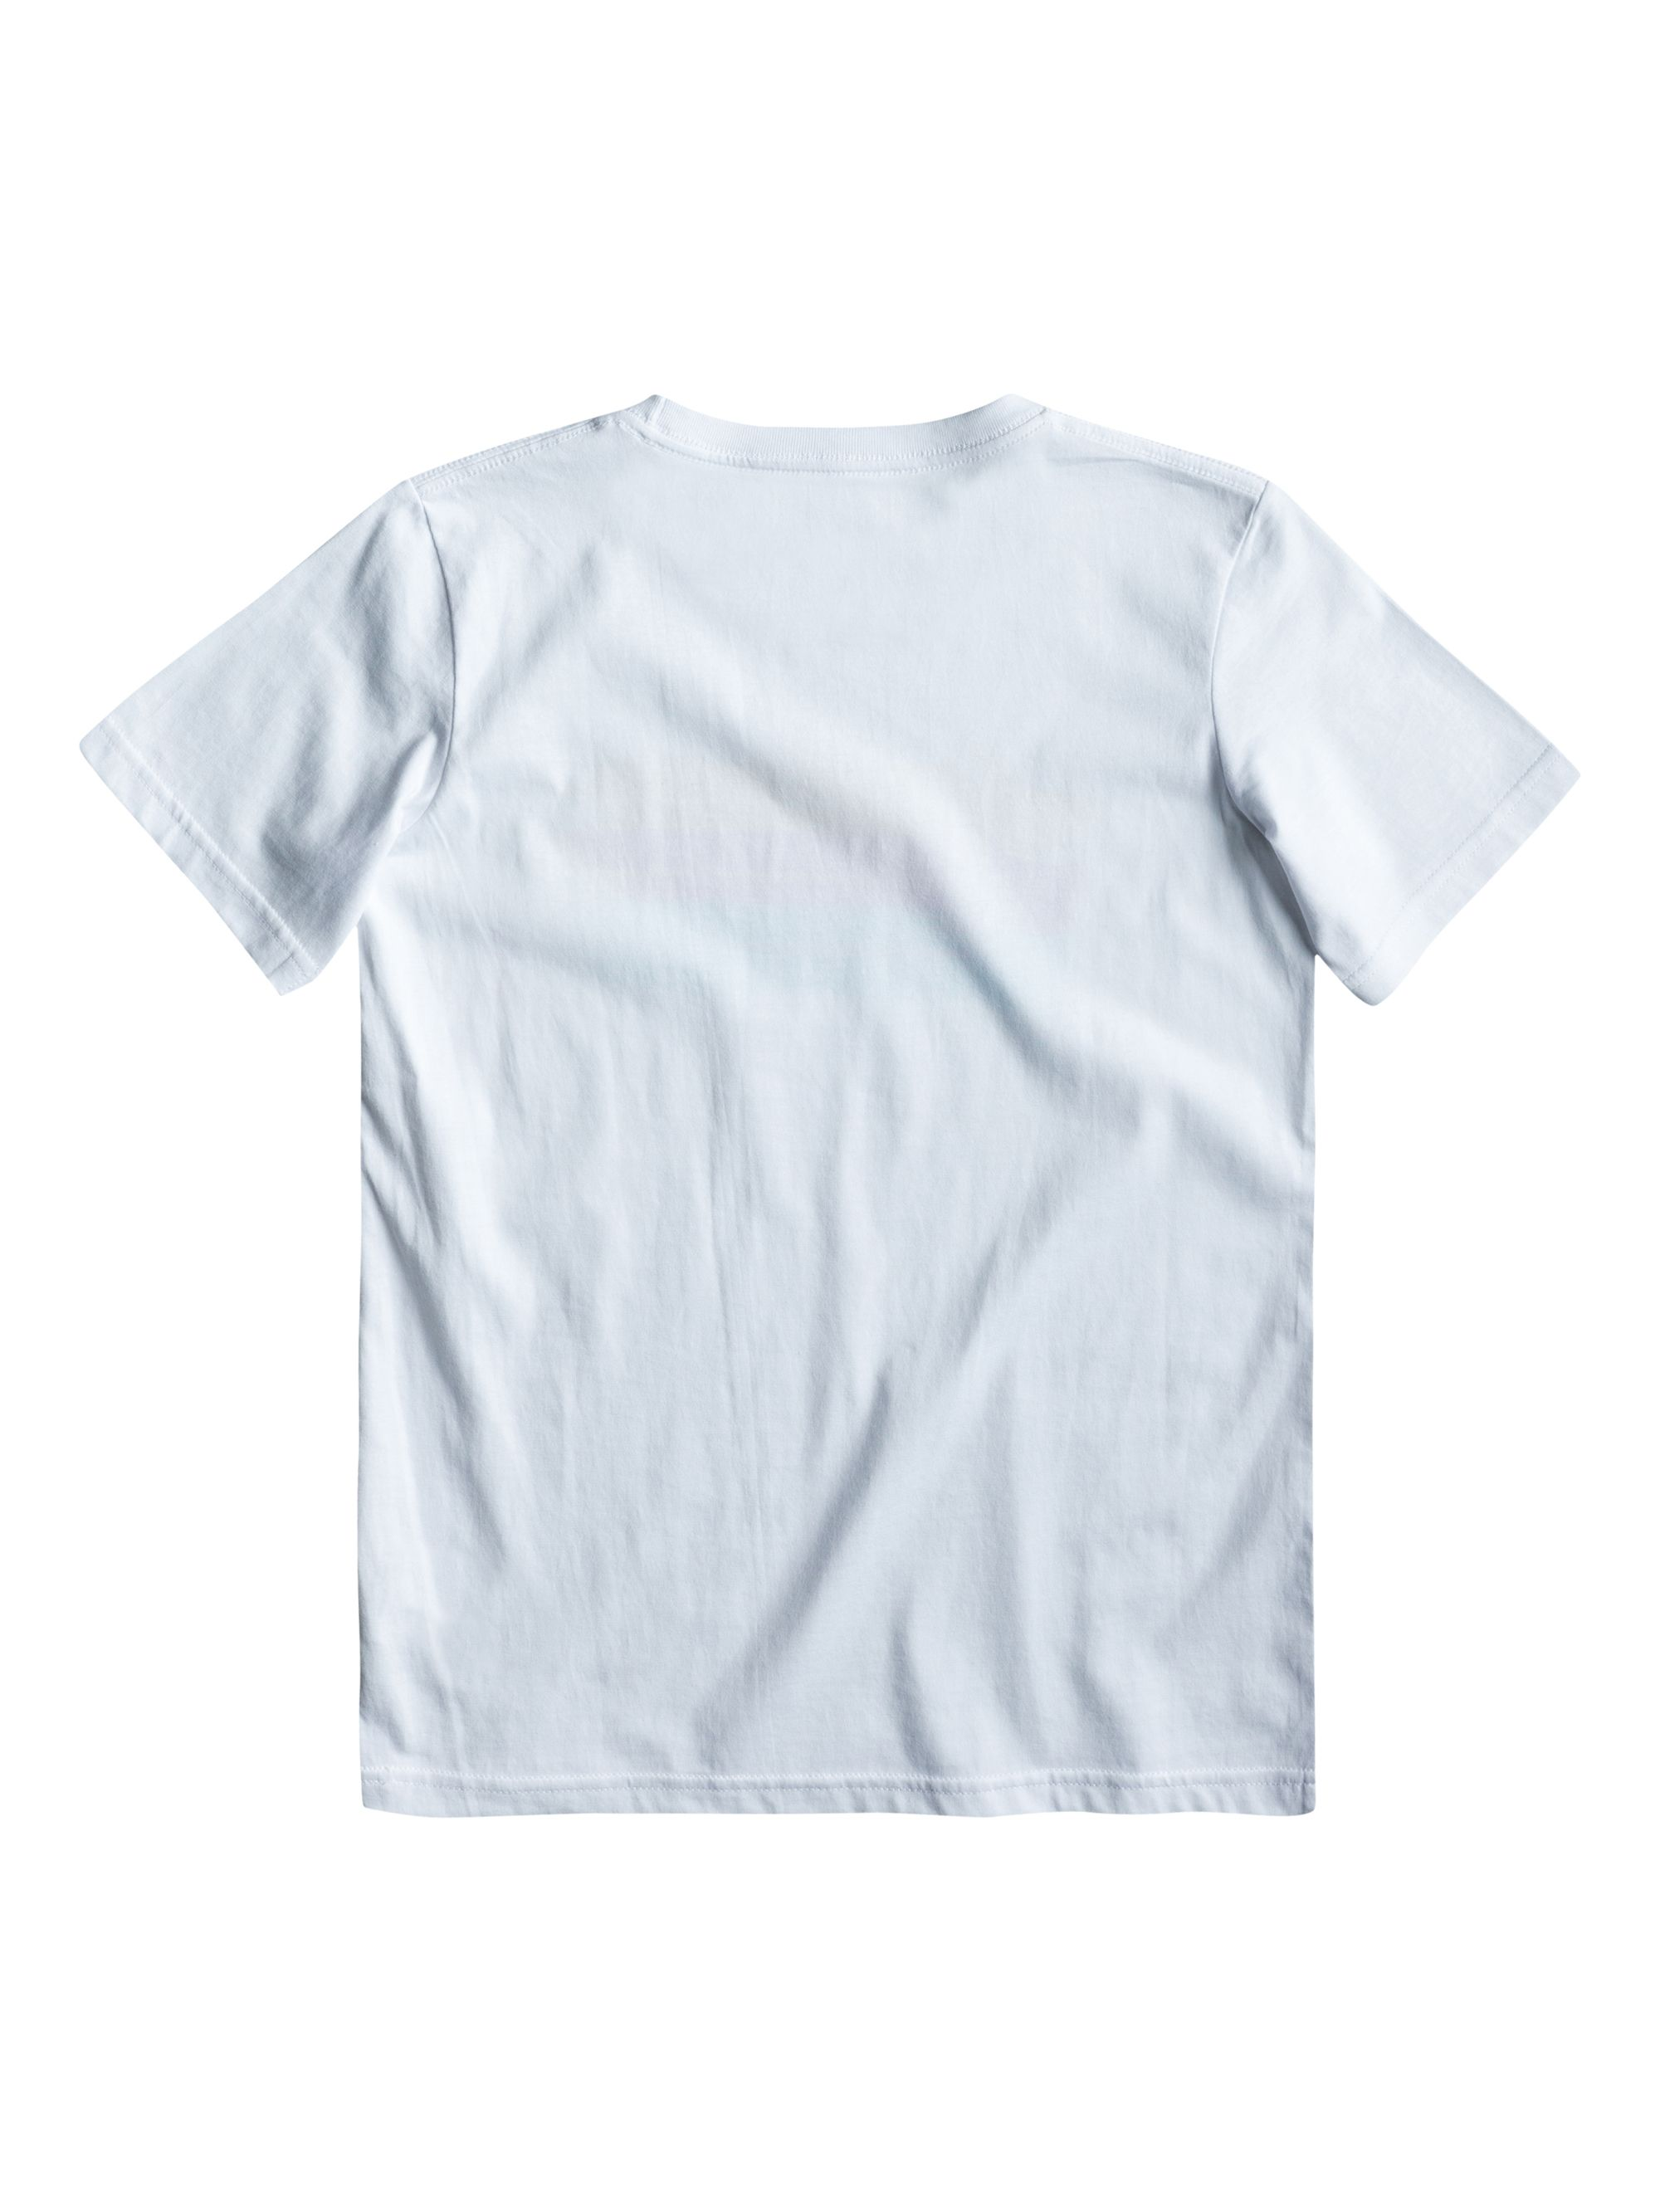 Boys  basic  msp q7 t-shirt